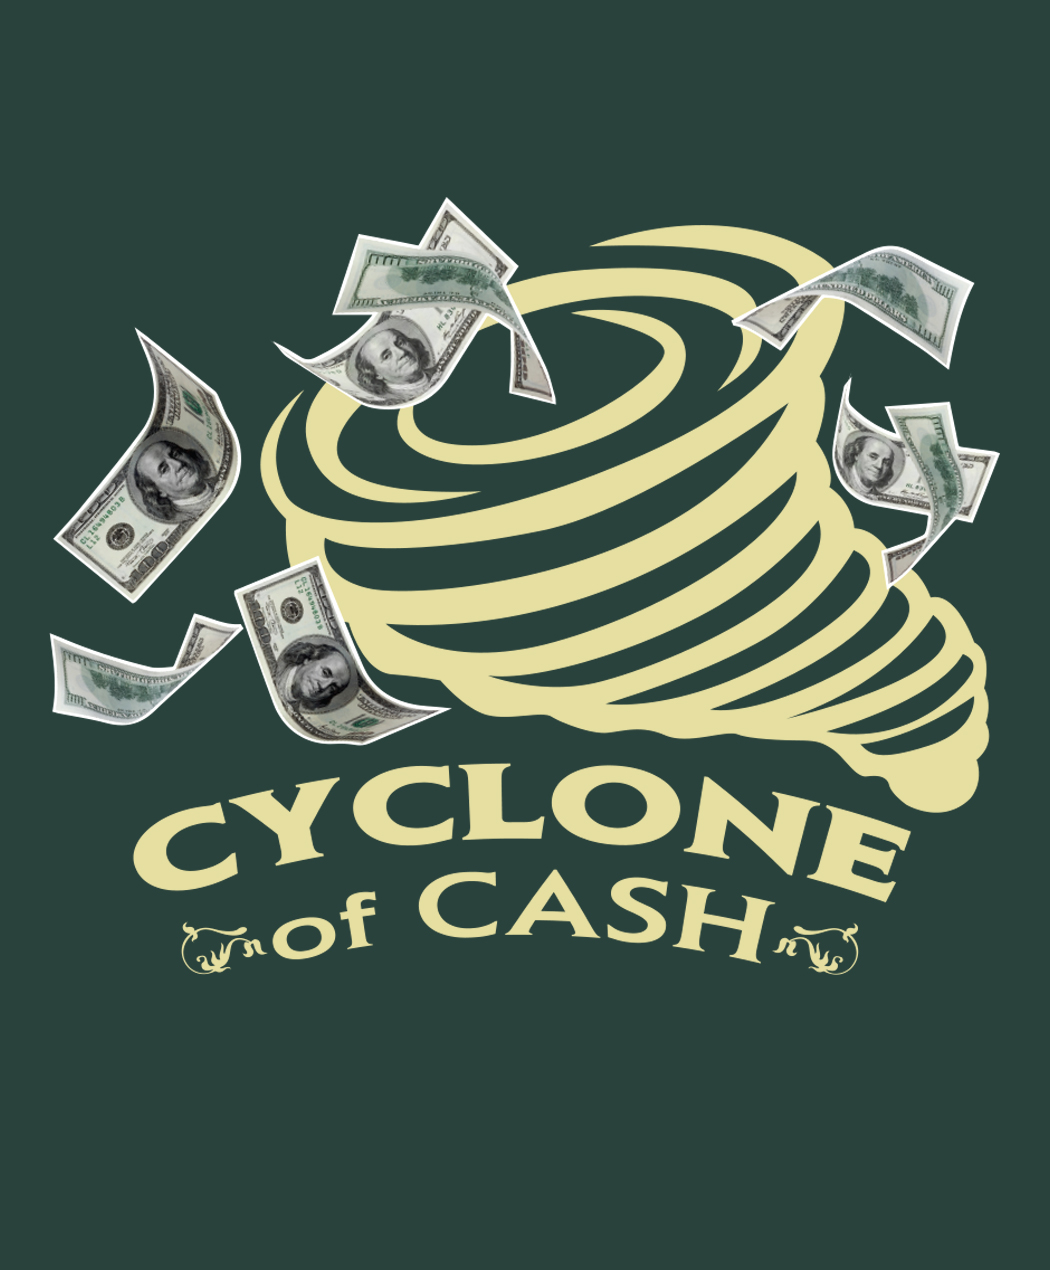 Cyclone of Cash